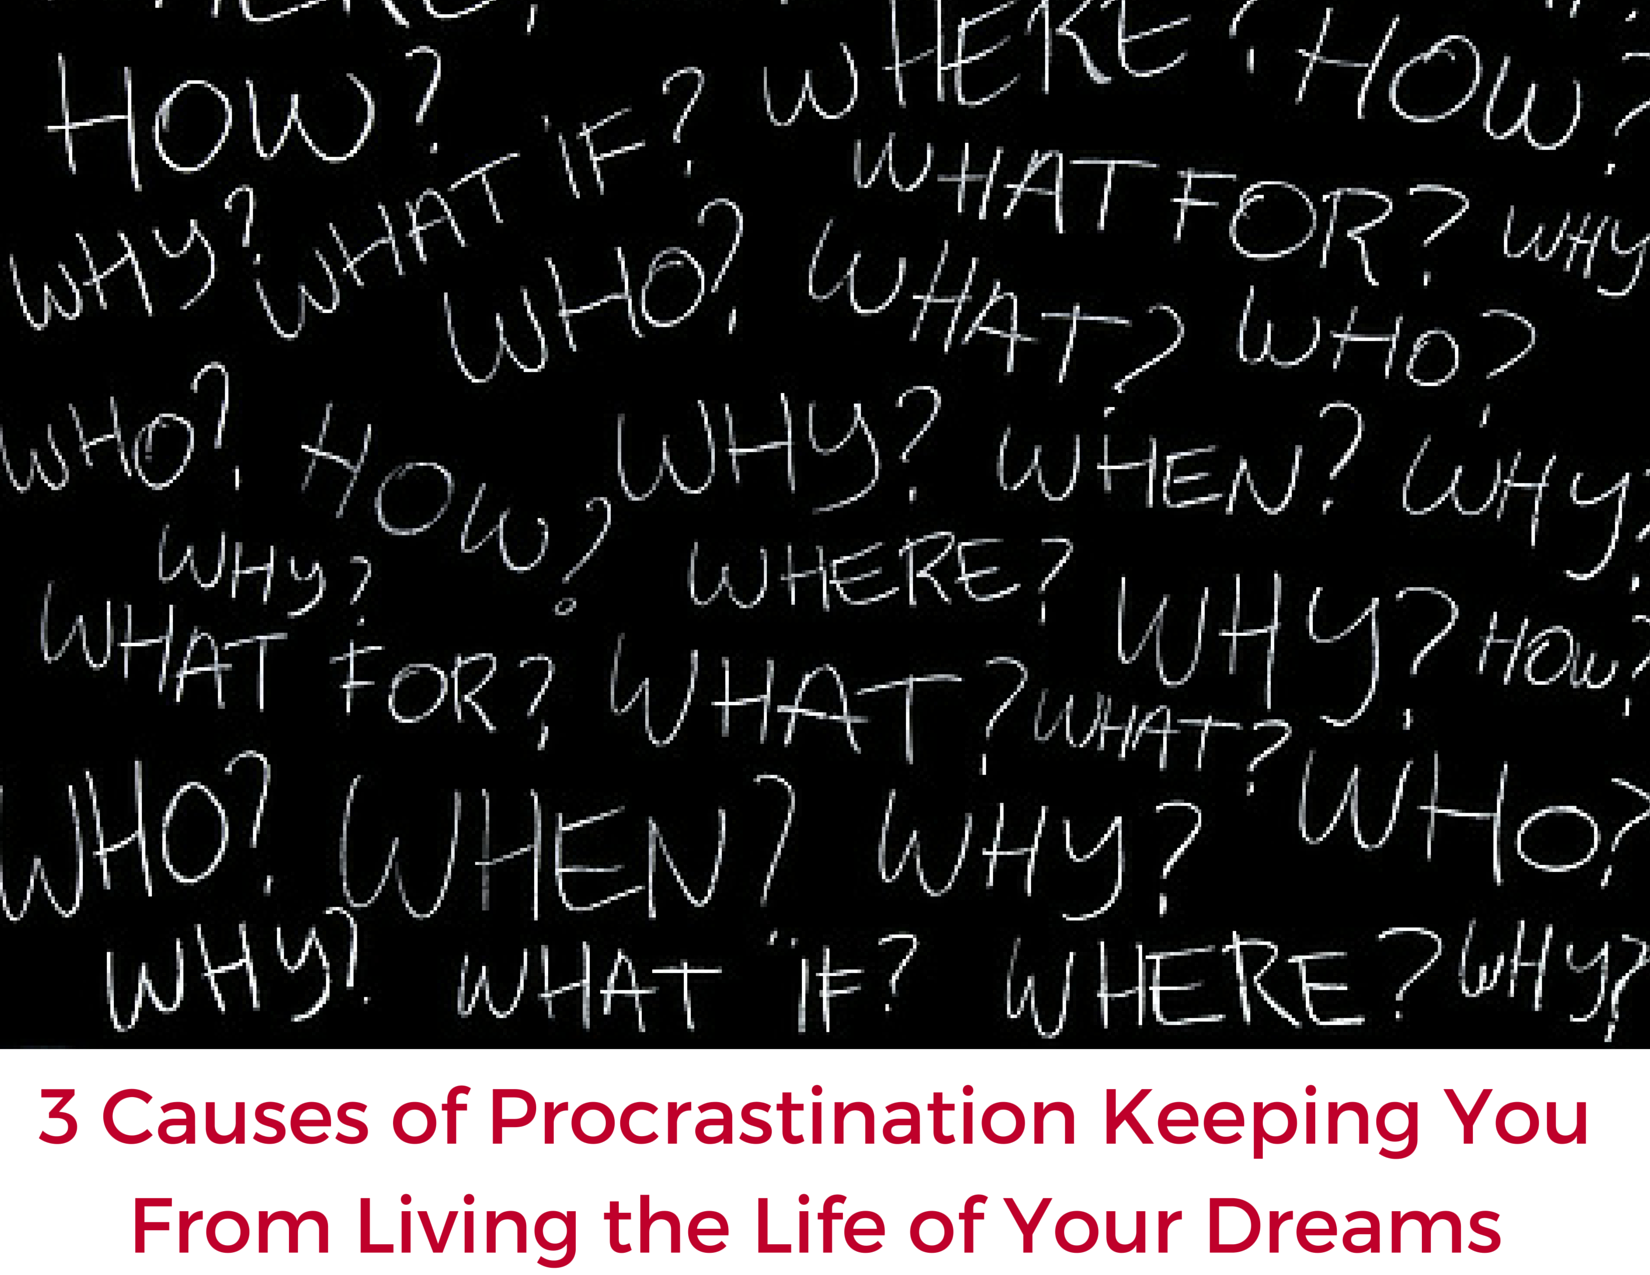 3 Causes of Procrastination Keeping Your From Living the Life of Your Dreams